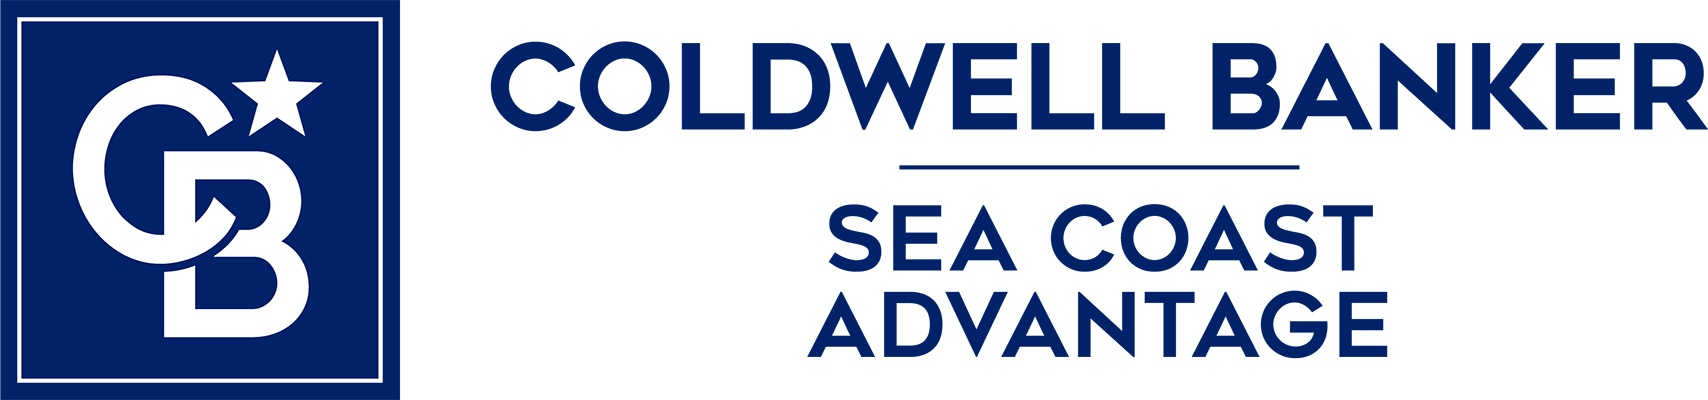 Luke Ziegler - Coldwell Banker Sea Coast Advantage Realty Logo